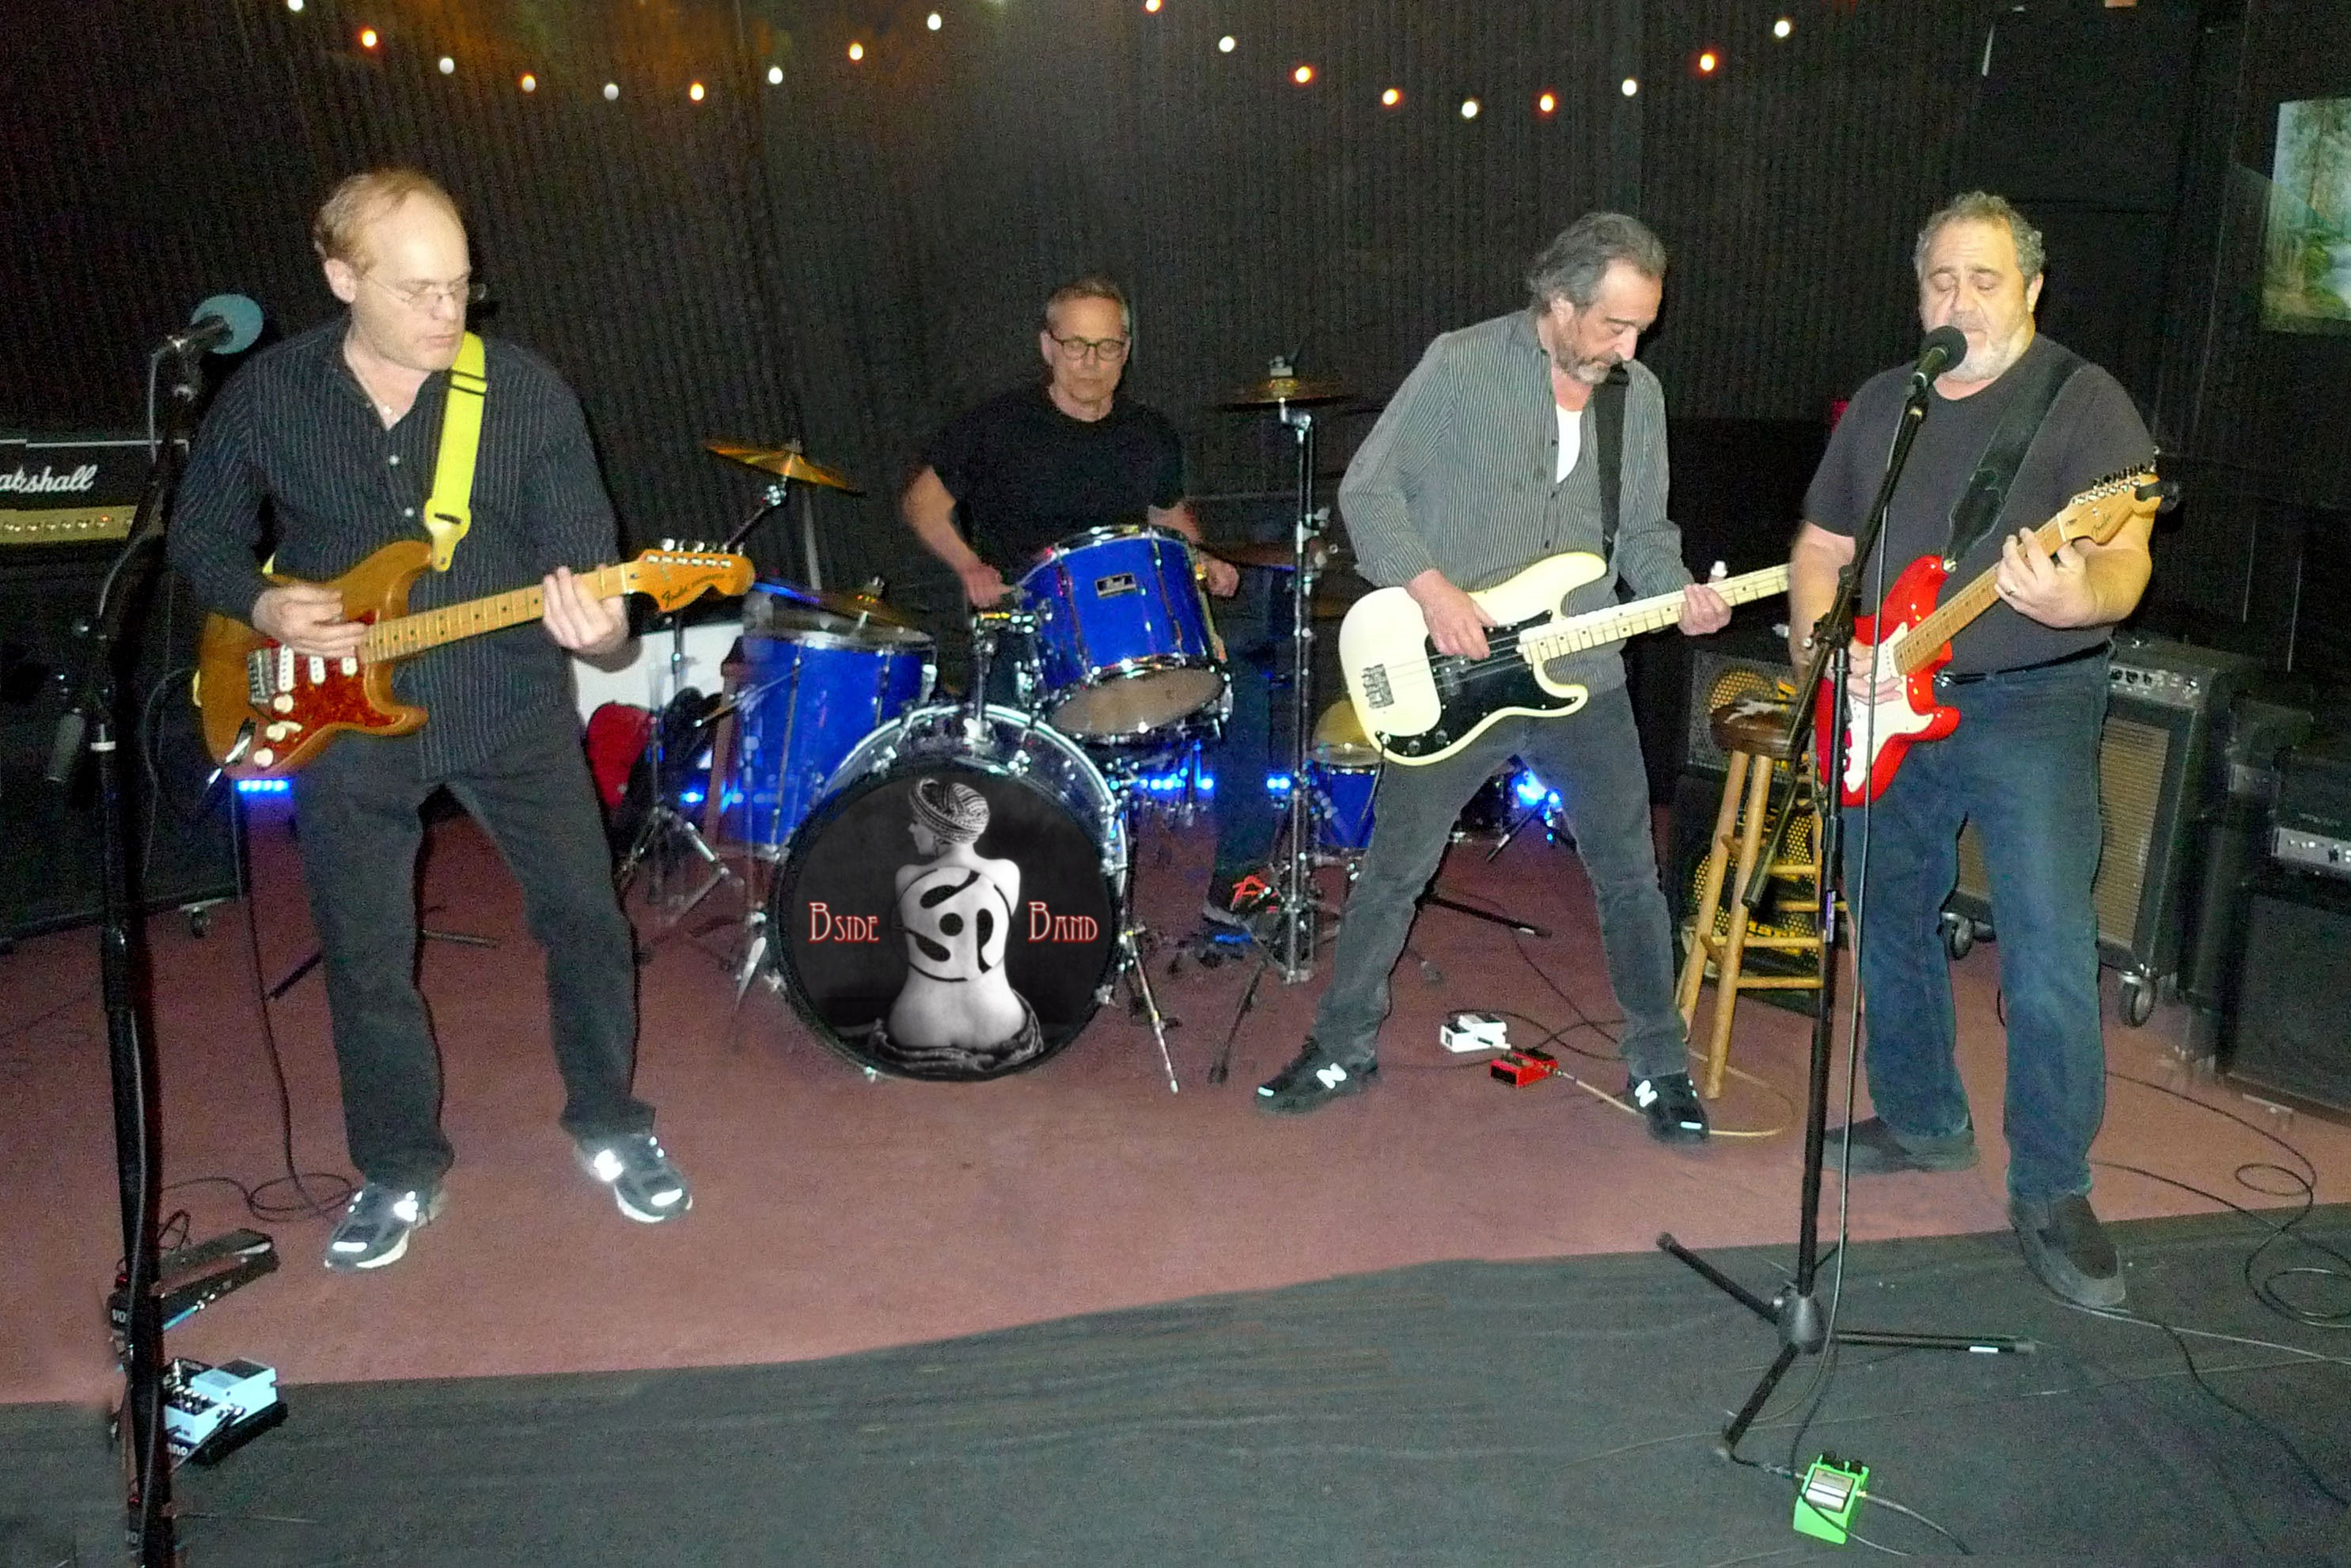 The B Side Band Performing